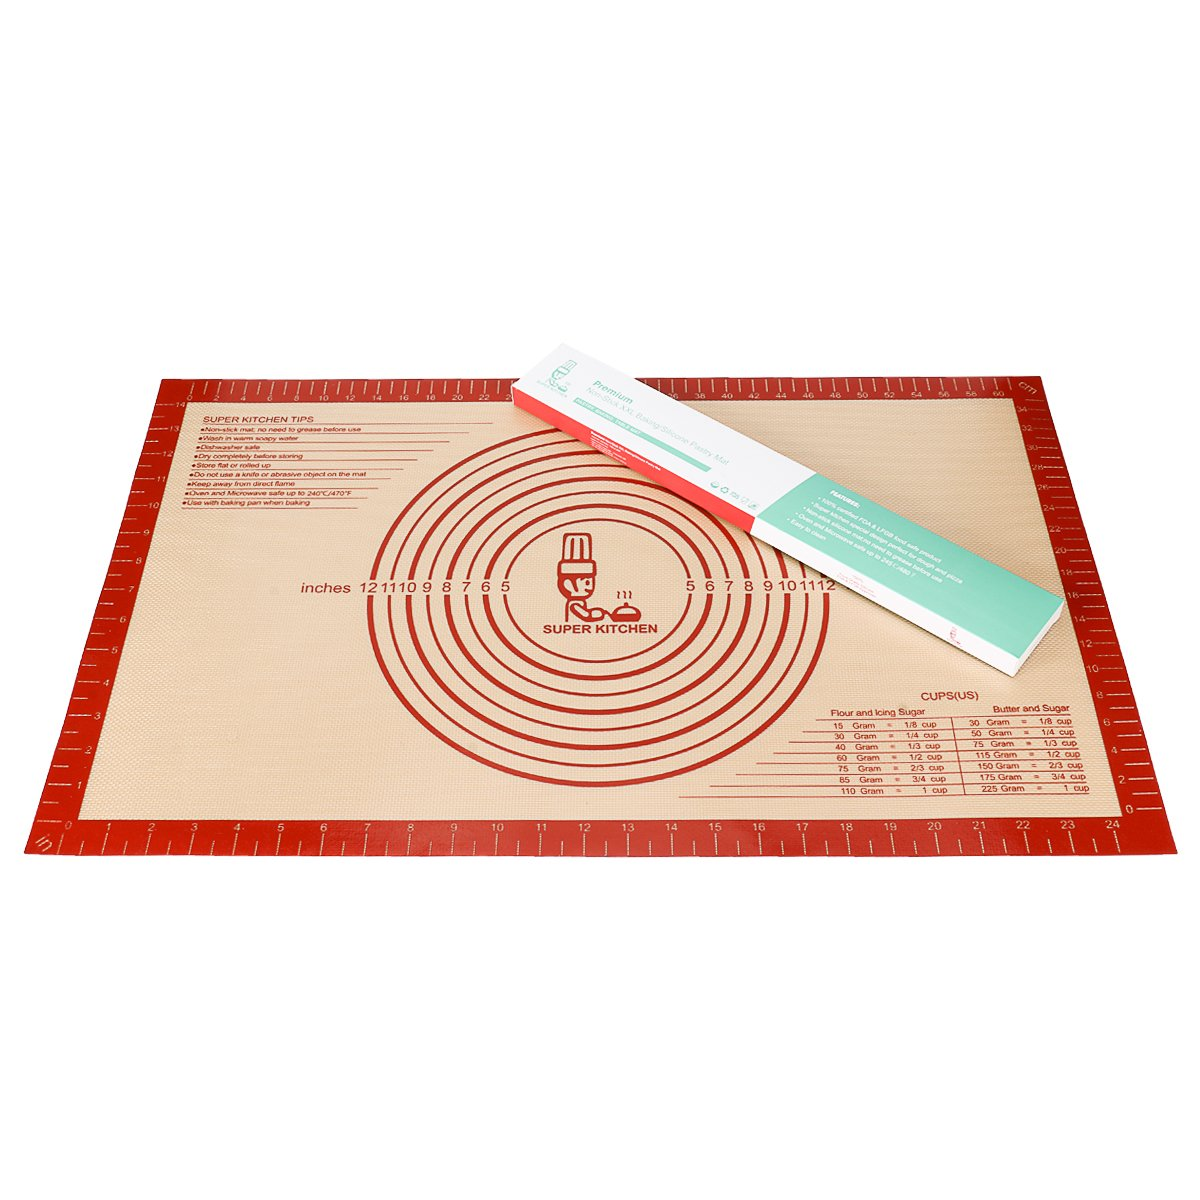 Large Silicone Pastry Baking Mat with Measurements,16 x 26 Inch Silicone Fondant Sheet, Non-Slip Mat Sticks to Countertop for Rolling Dough ,Pie and Baking Mat By Folksy Super Kitchen (16x26, Red)